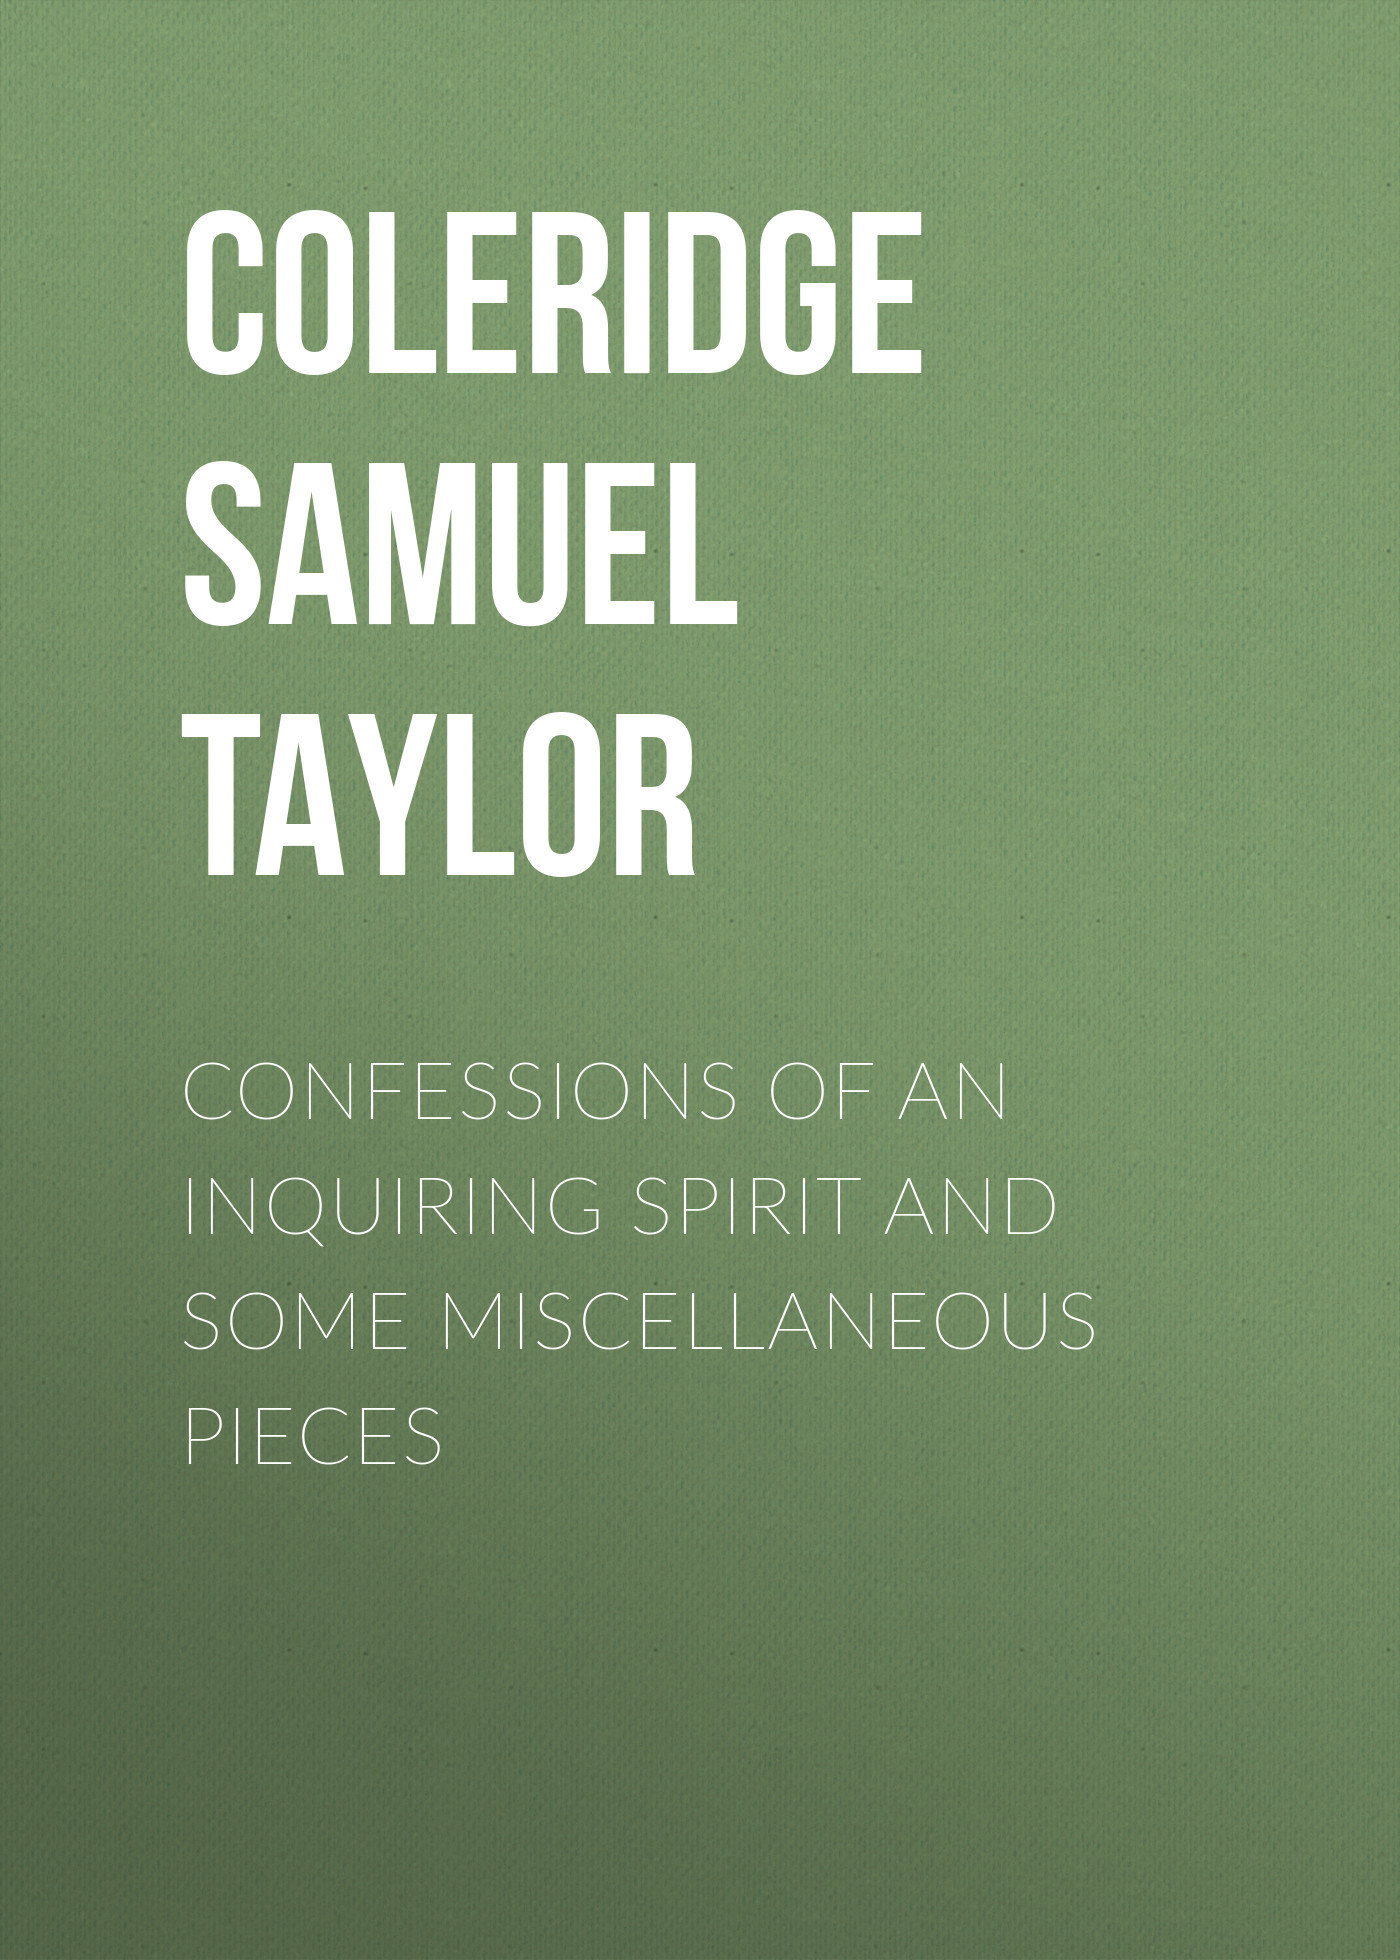 Coleridge Samuel Taylor Confessions of an Inquiring Spirit and Some Miscellaneous Pieces confessions of a shopaholic original soundtrack